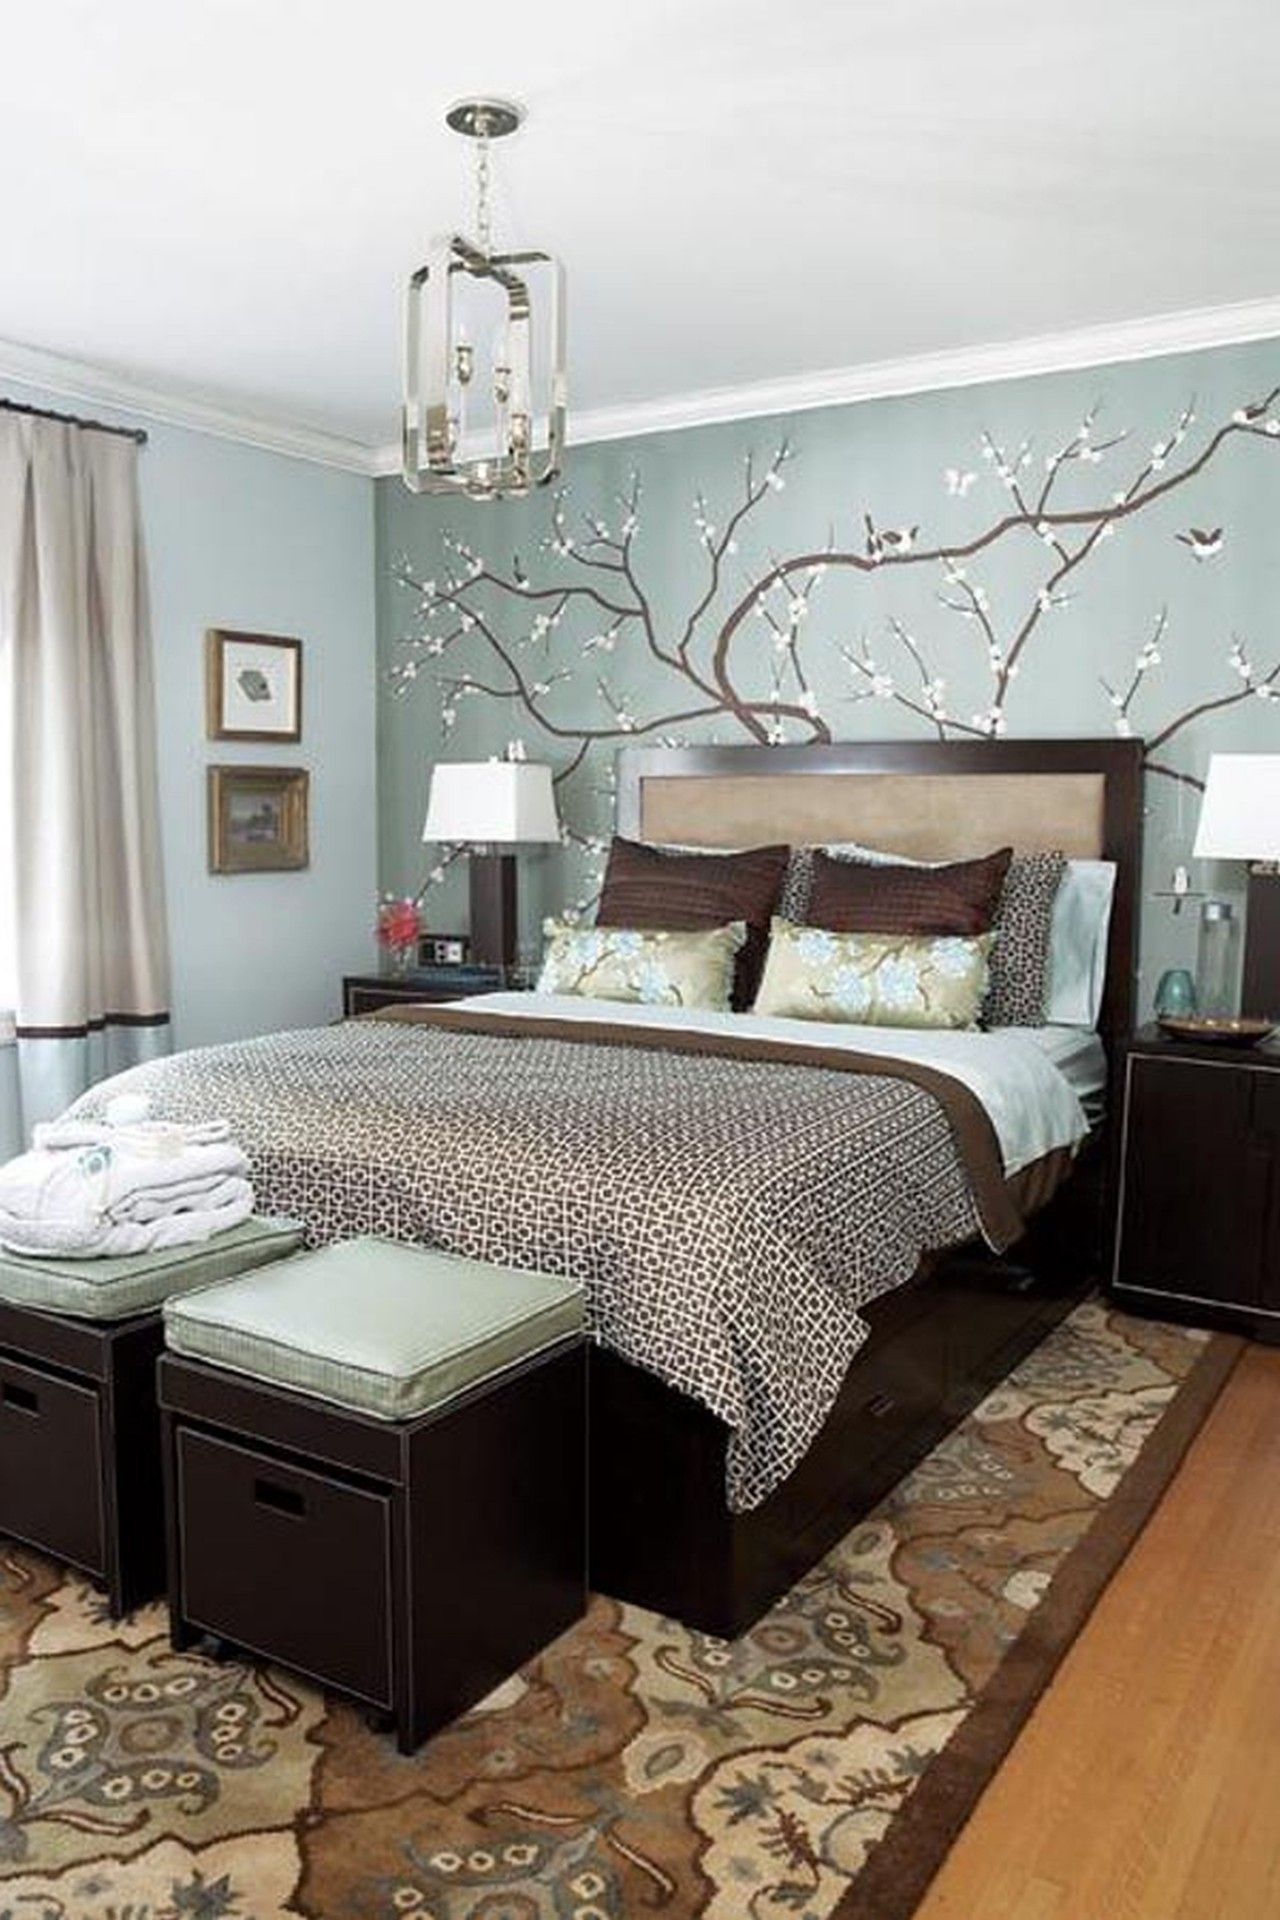 Amazing How To Decorate A Small Bedroom Ideas Exciting Ikea Bedrooms Nice Lighting Collaboration Decorating Blue And Brown1 Inspiring